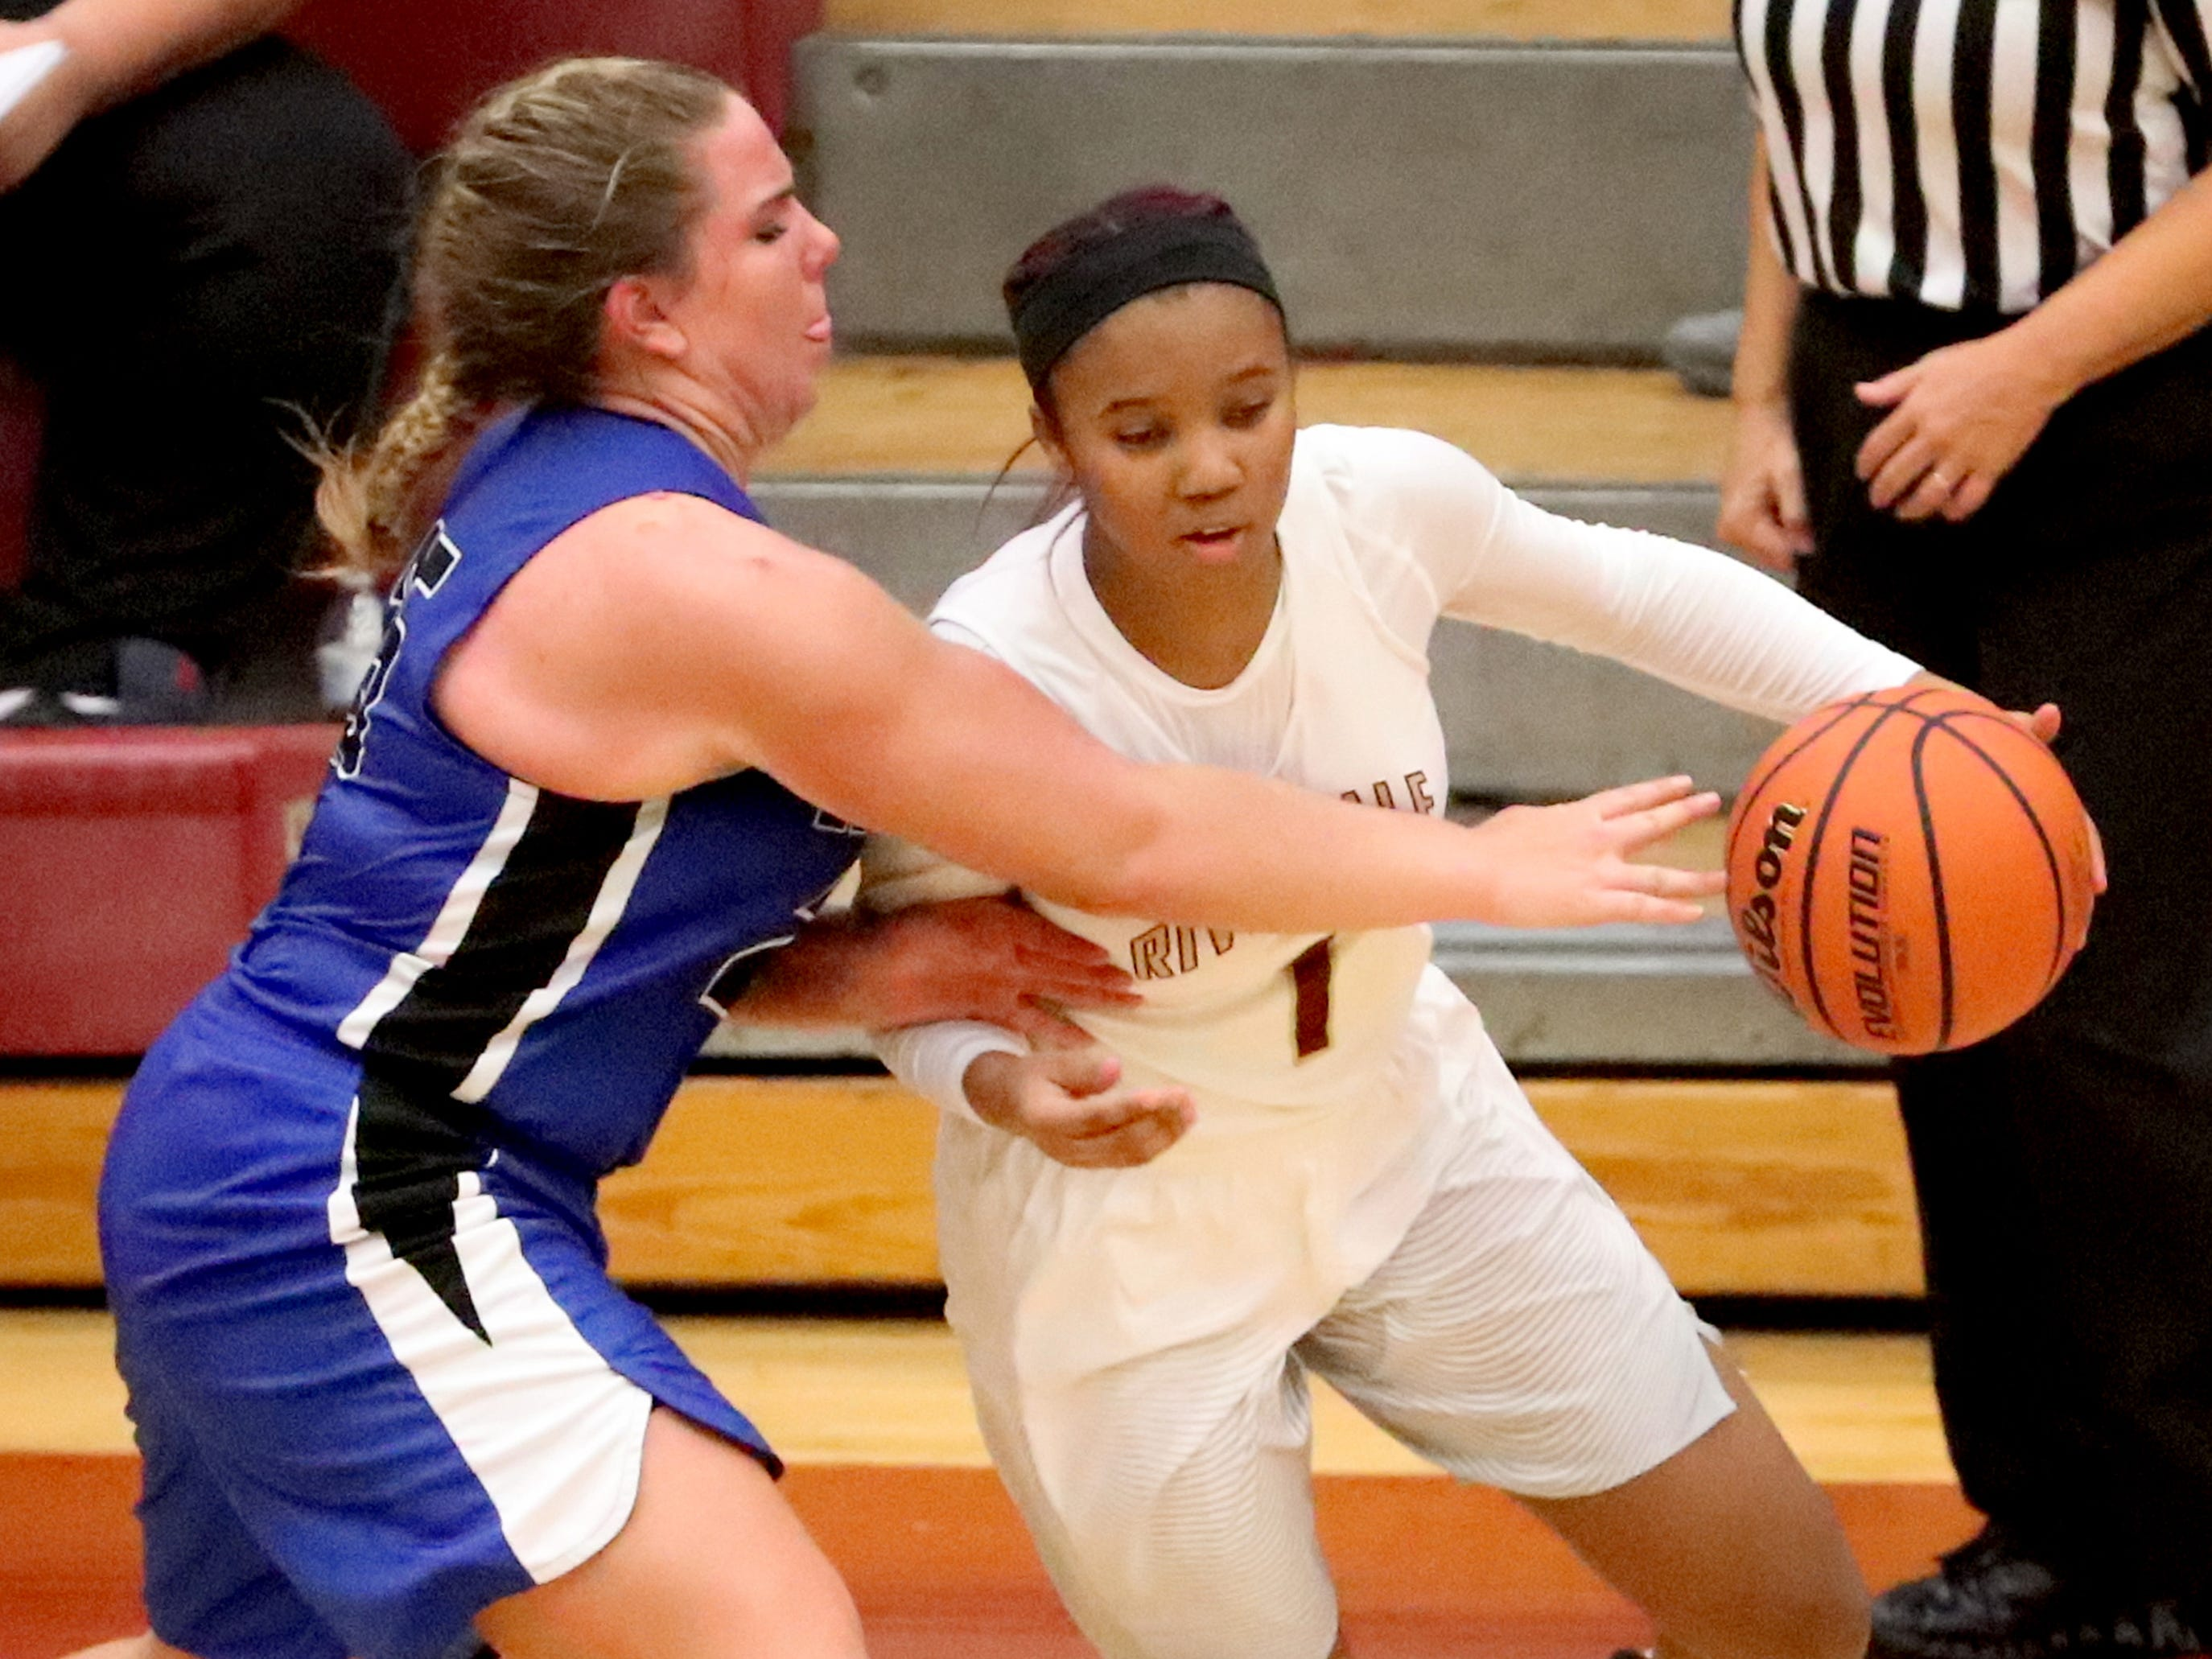 RiverdaleÕs Alasia Hayes (1) pushes toward the basket was Lebanon's  Allissa Mulaski (25) fouls her on Friday, Nov. 30, 2018.